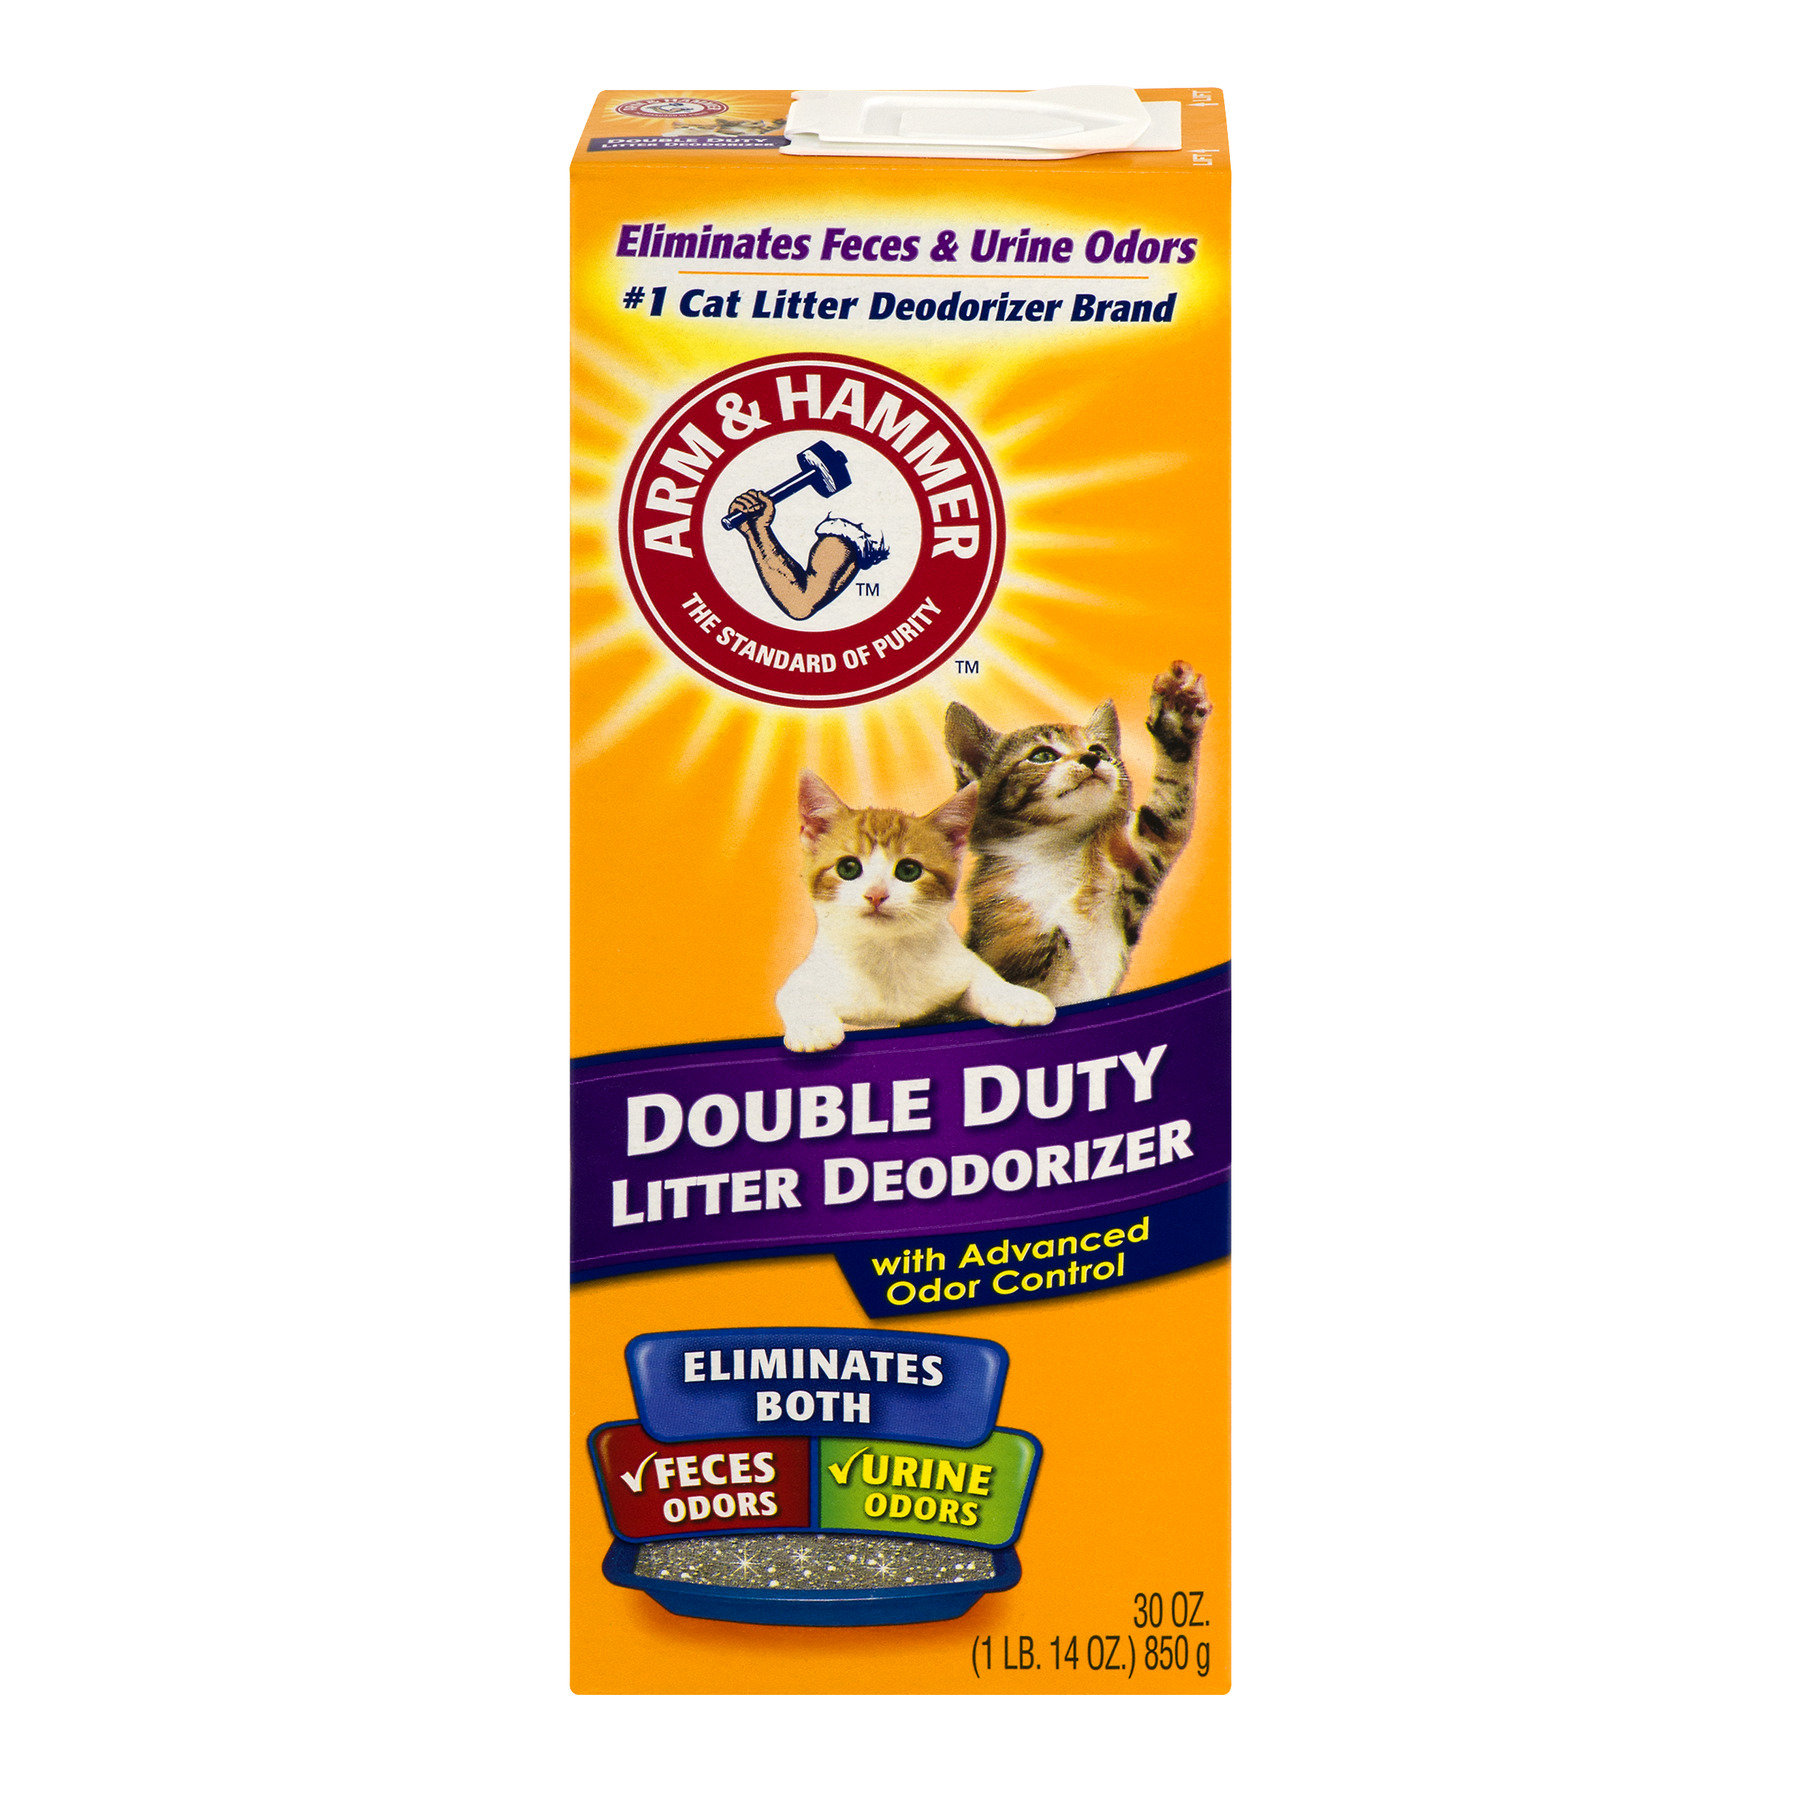 Arm & Hammer Double Duty Litter Deodorizer with Advanced Odor Control, 30.0 OZ